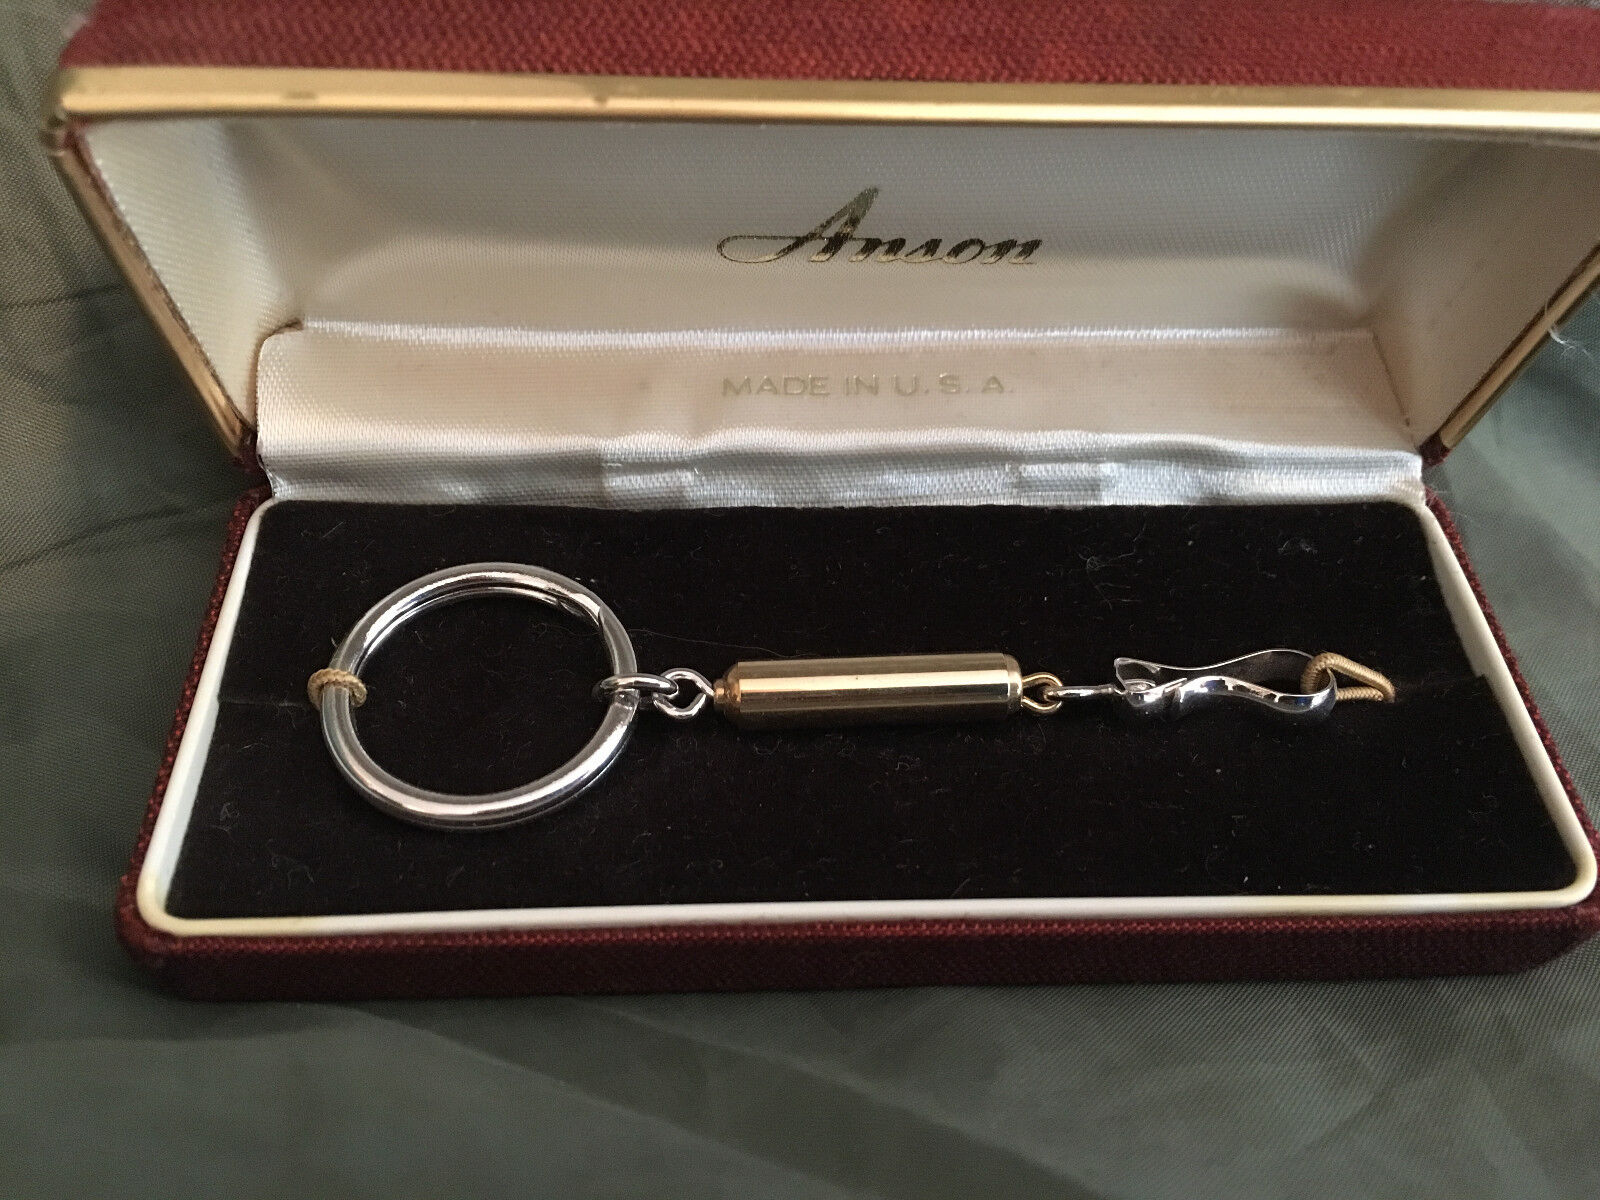 Vintage Keychain Silver with Gold Round Barrel Keyring NOS Anson